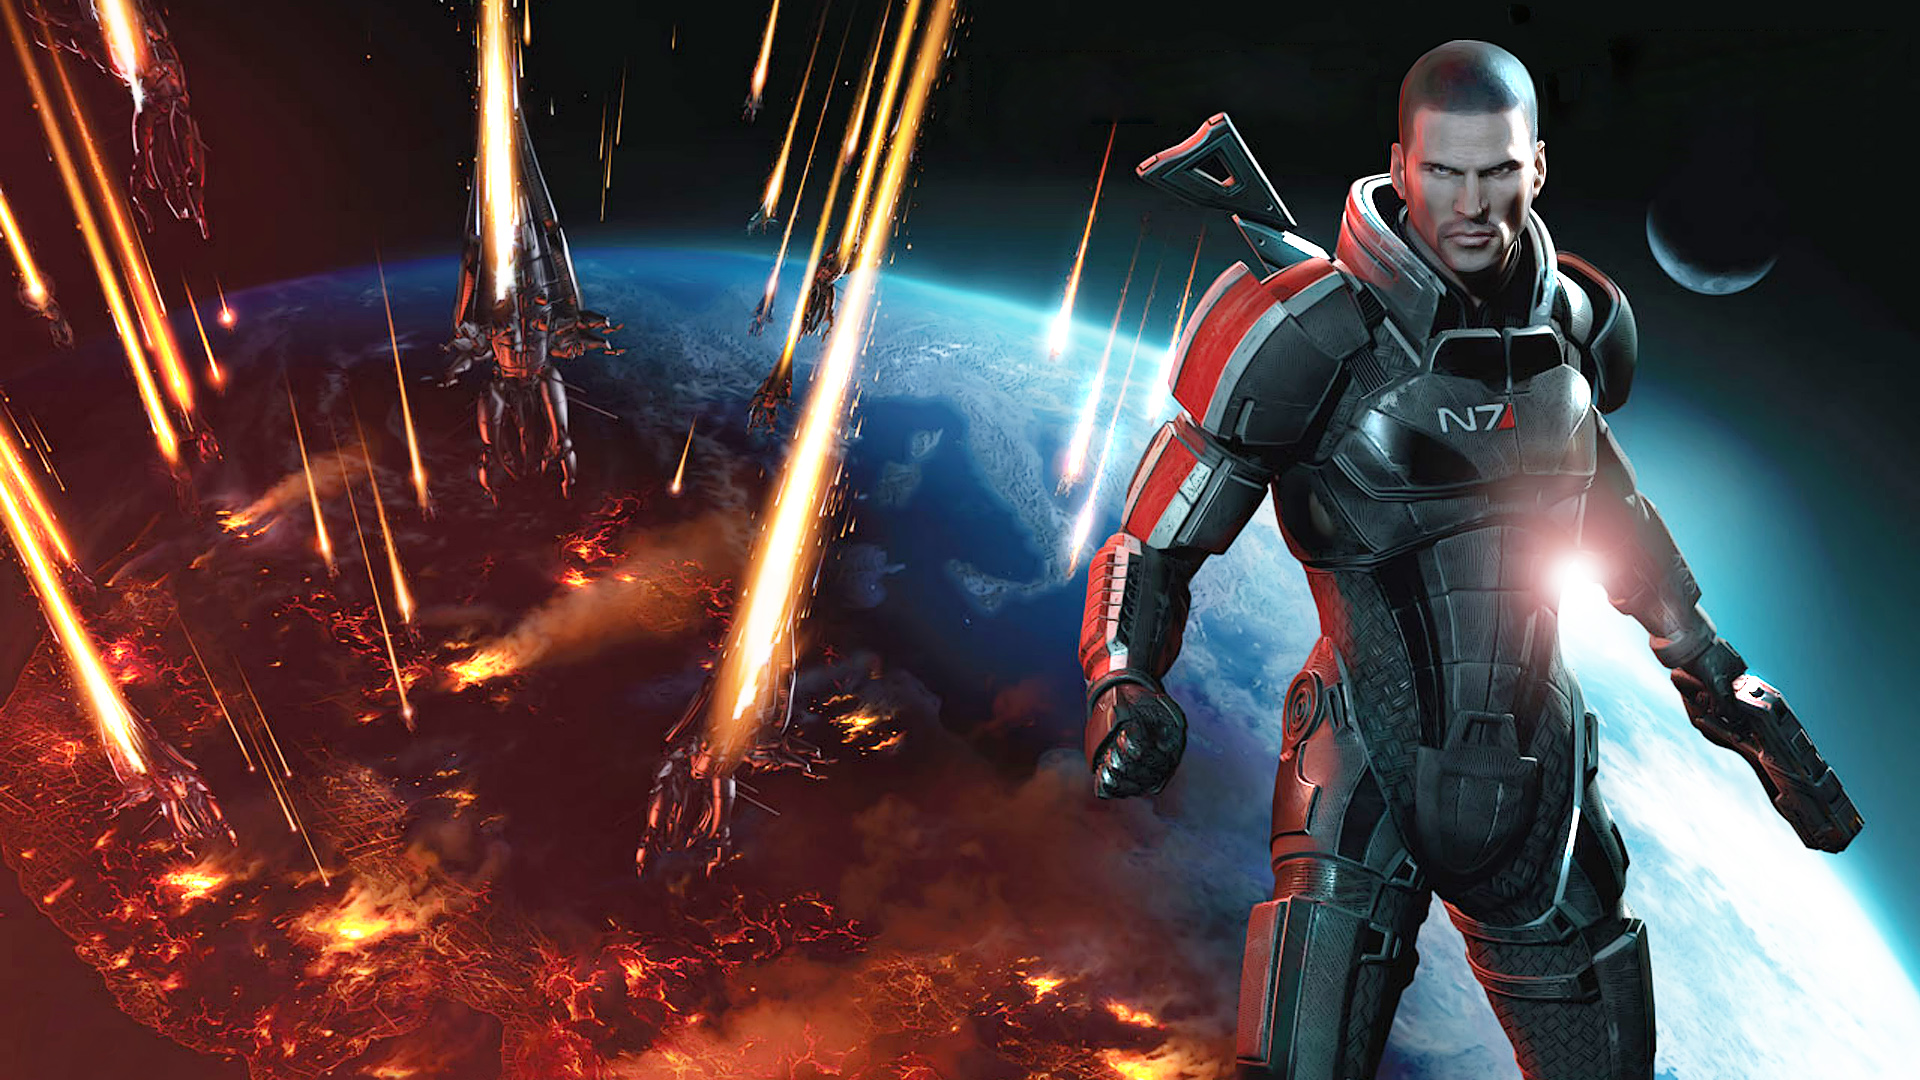 Commander Shepard In Mass Effect 3 Hd Wallpaper